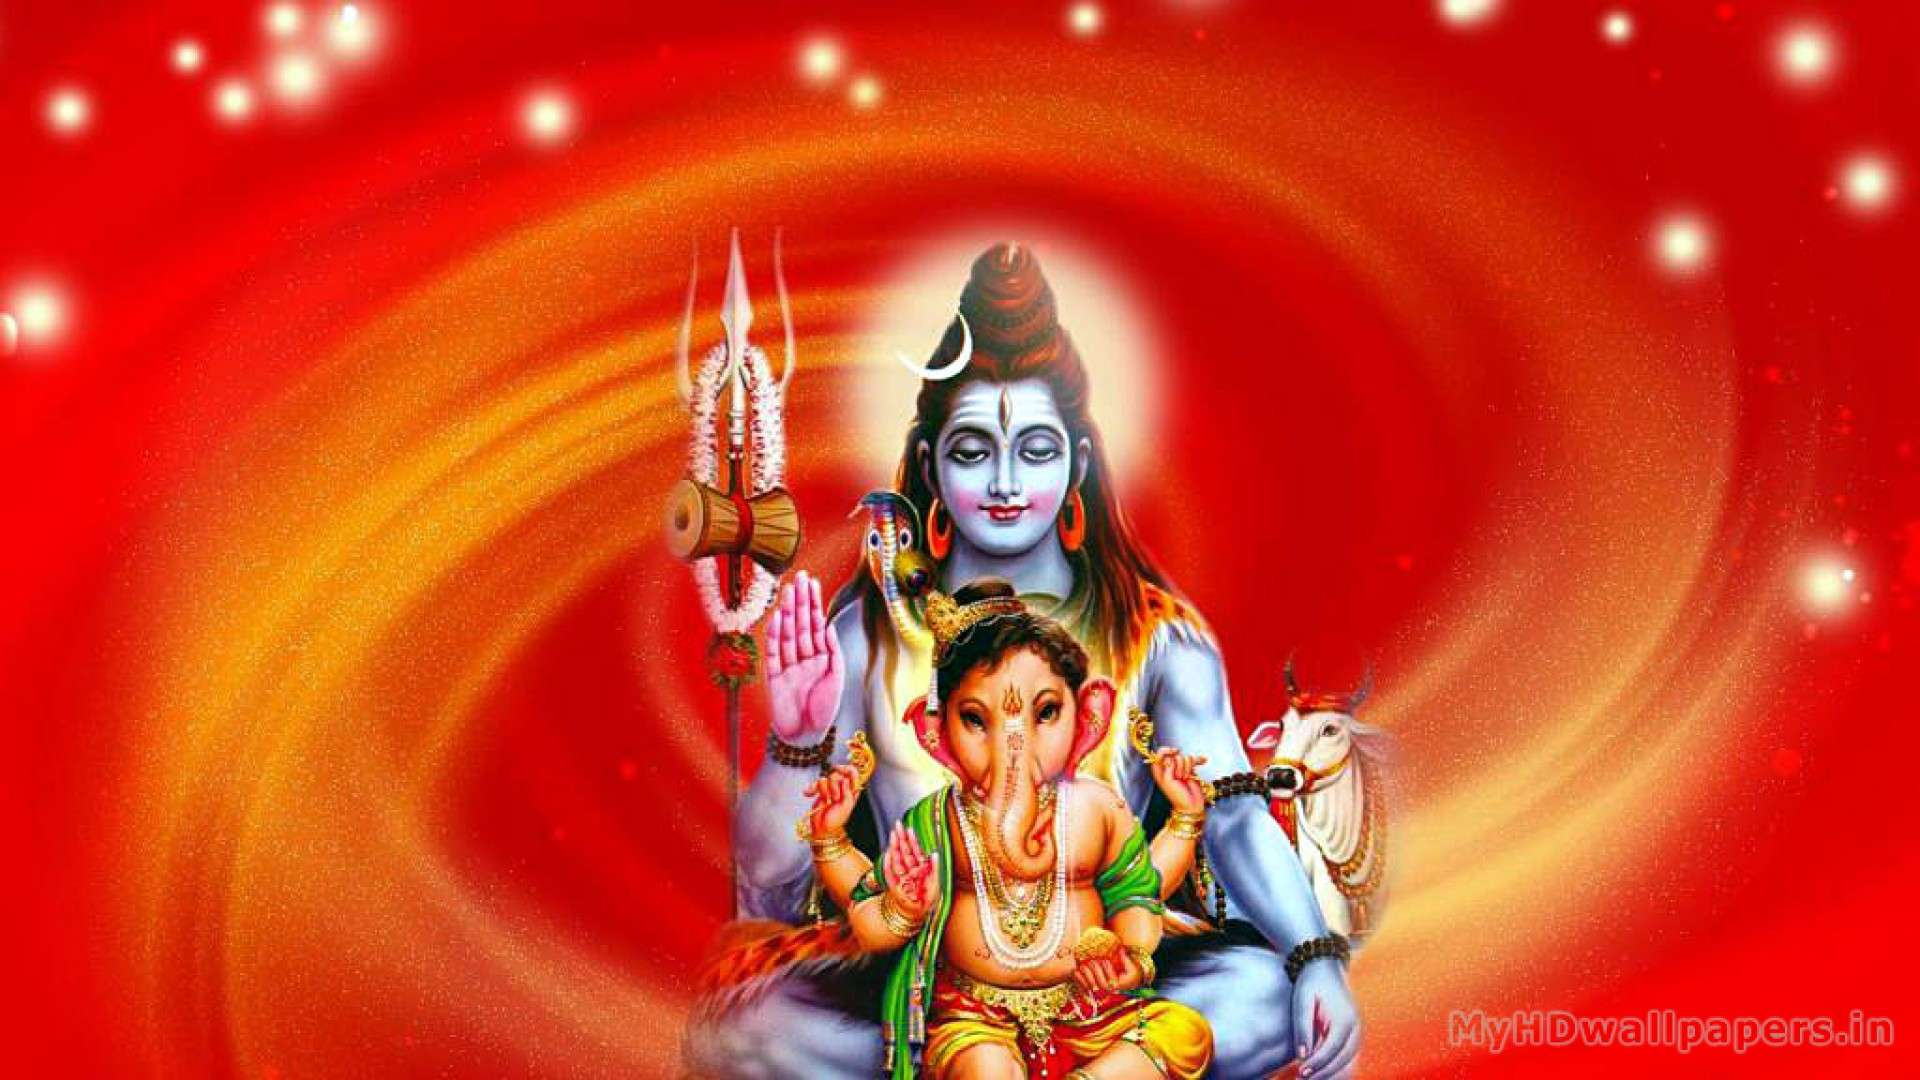 Lord Shiva Hd Wallpapers P Hd Wallpapers 1920x1080